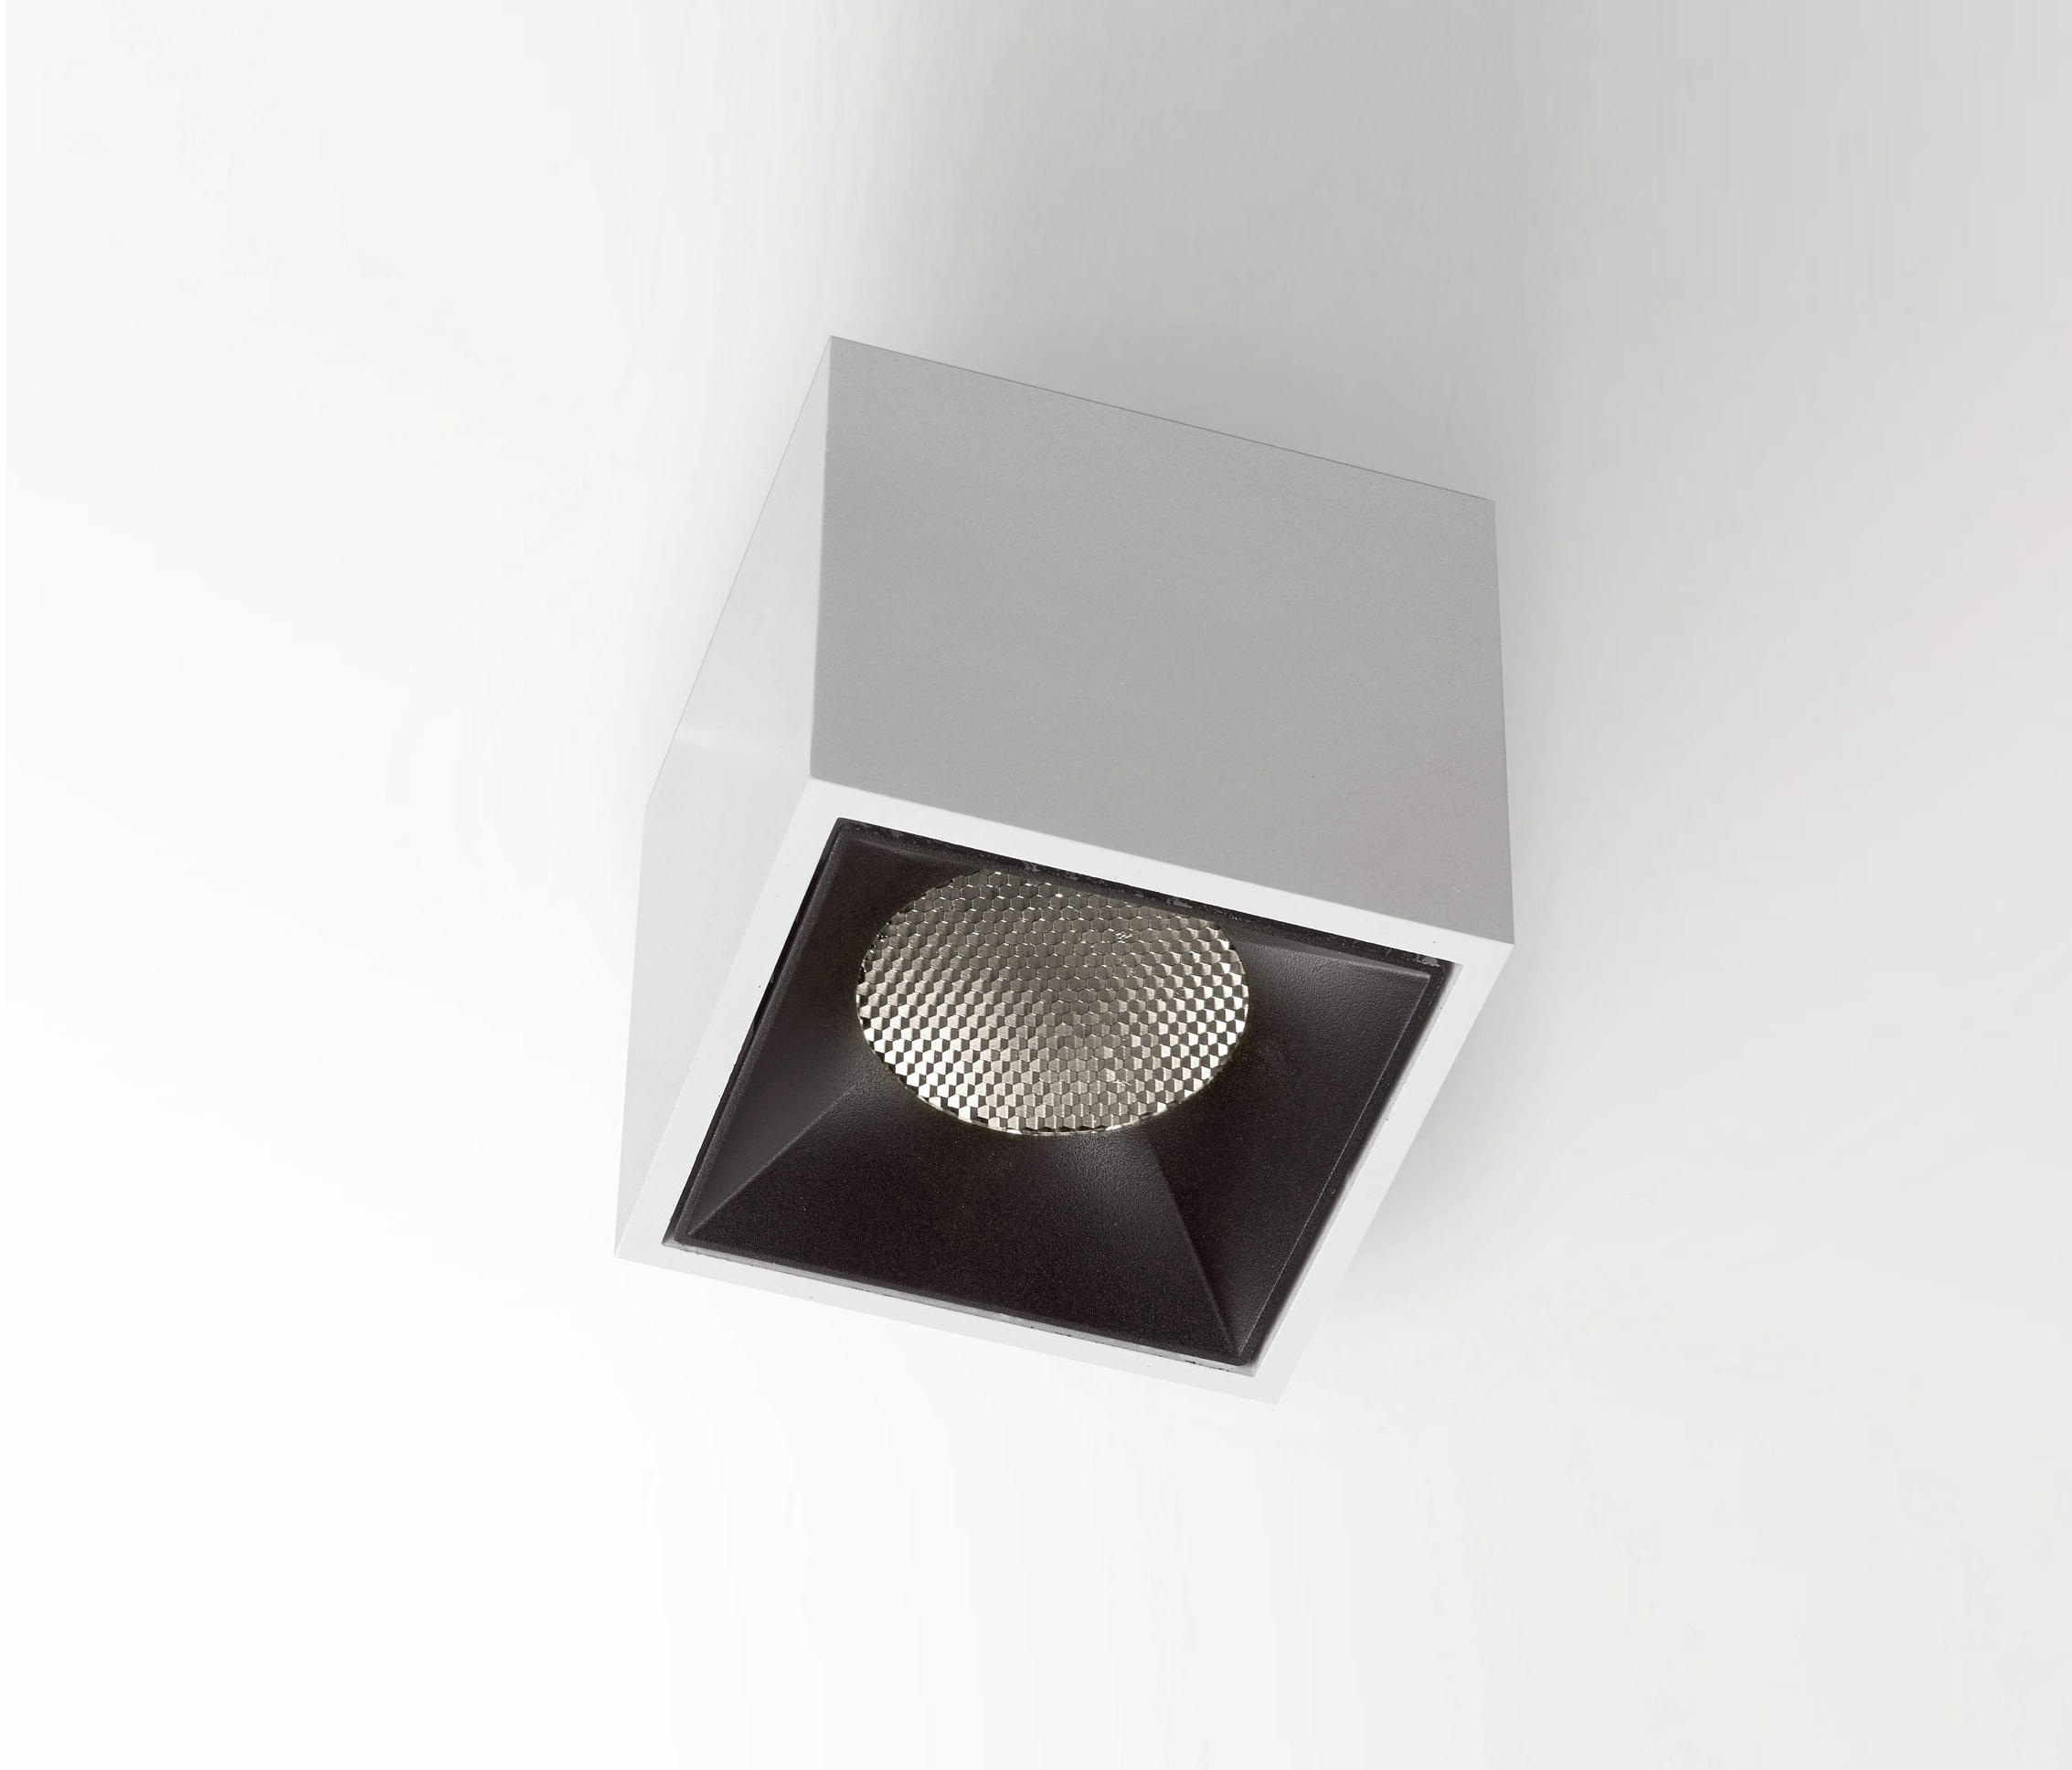 Boxy Xl S Boxy Xl S 92720 Ceiling Lights From Delta